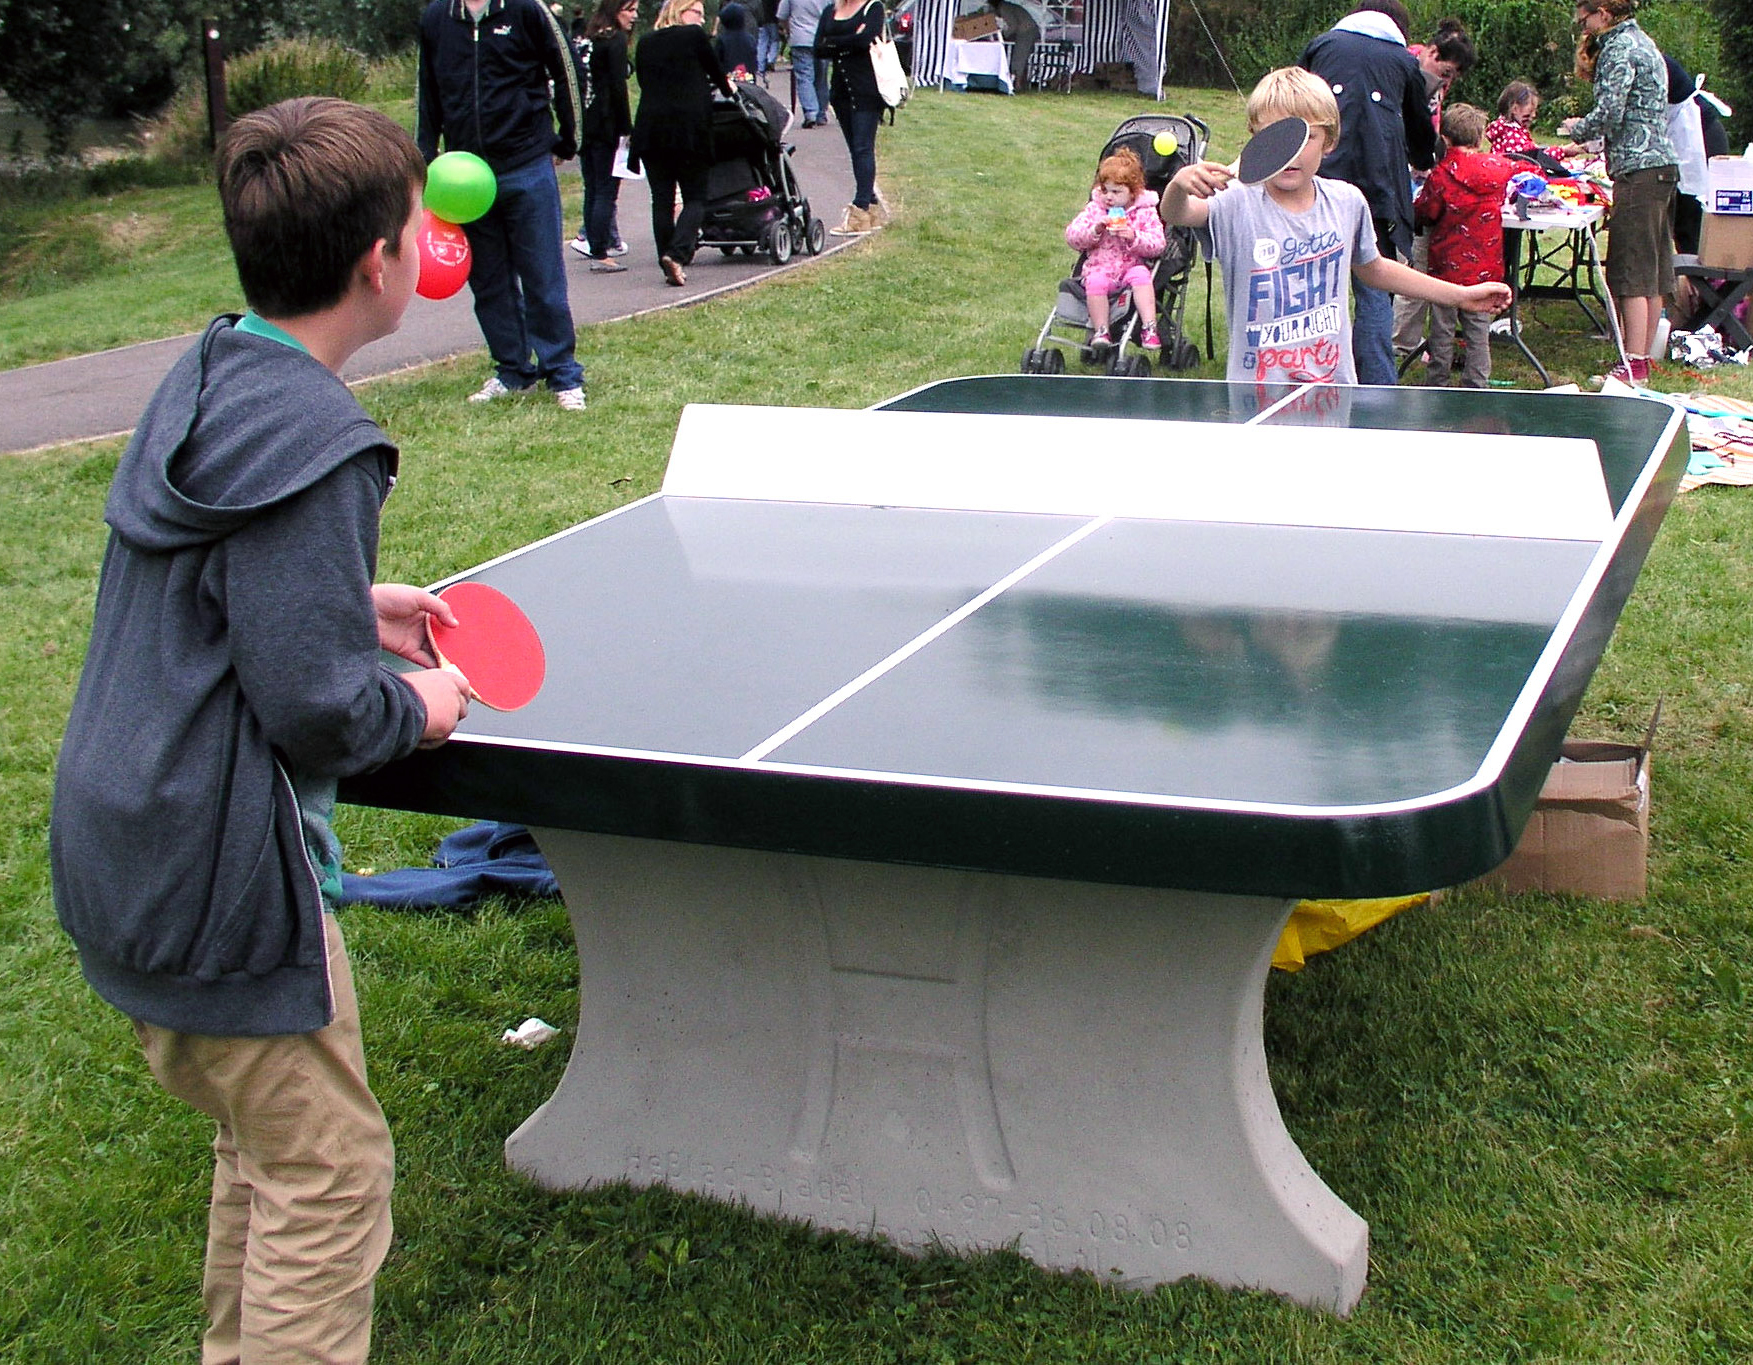 green concrete table tennis table with rounded corners